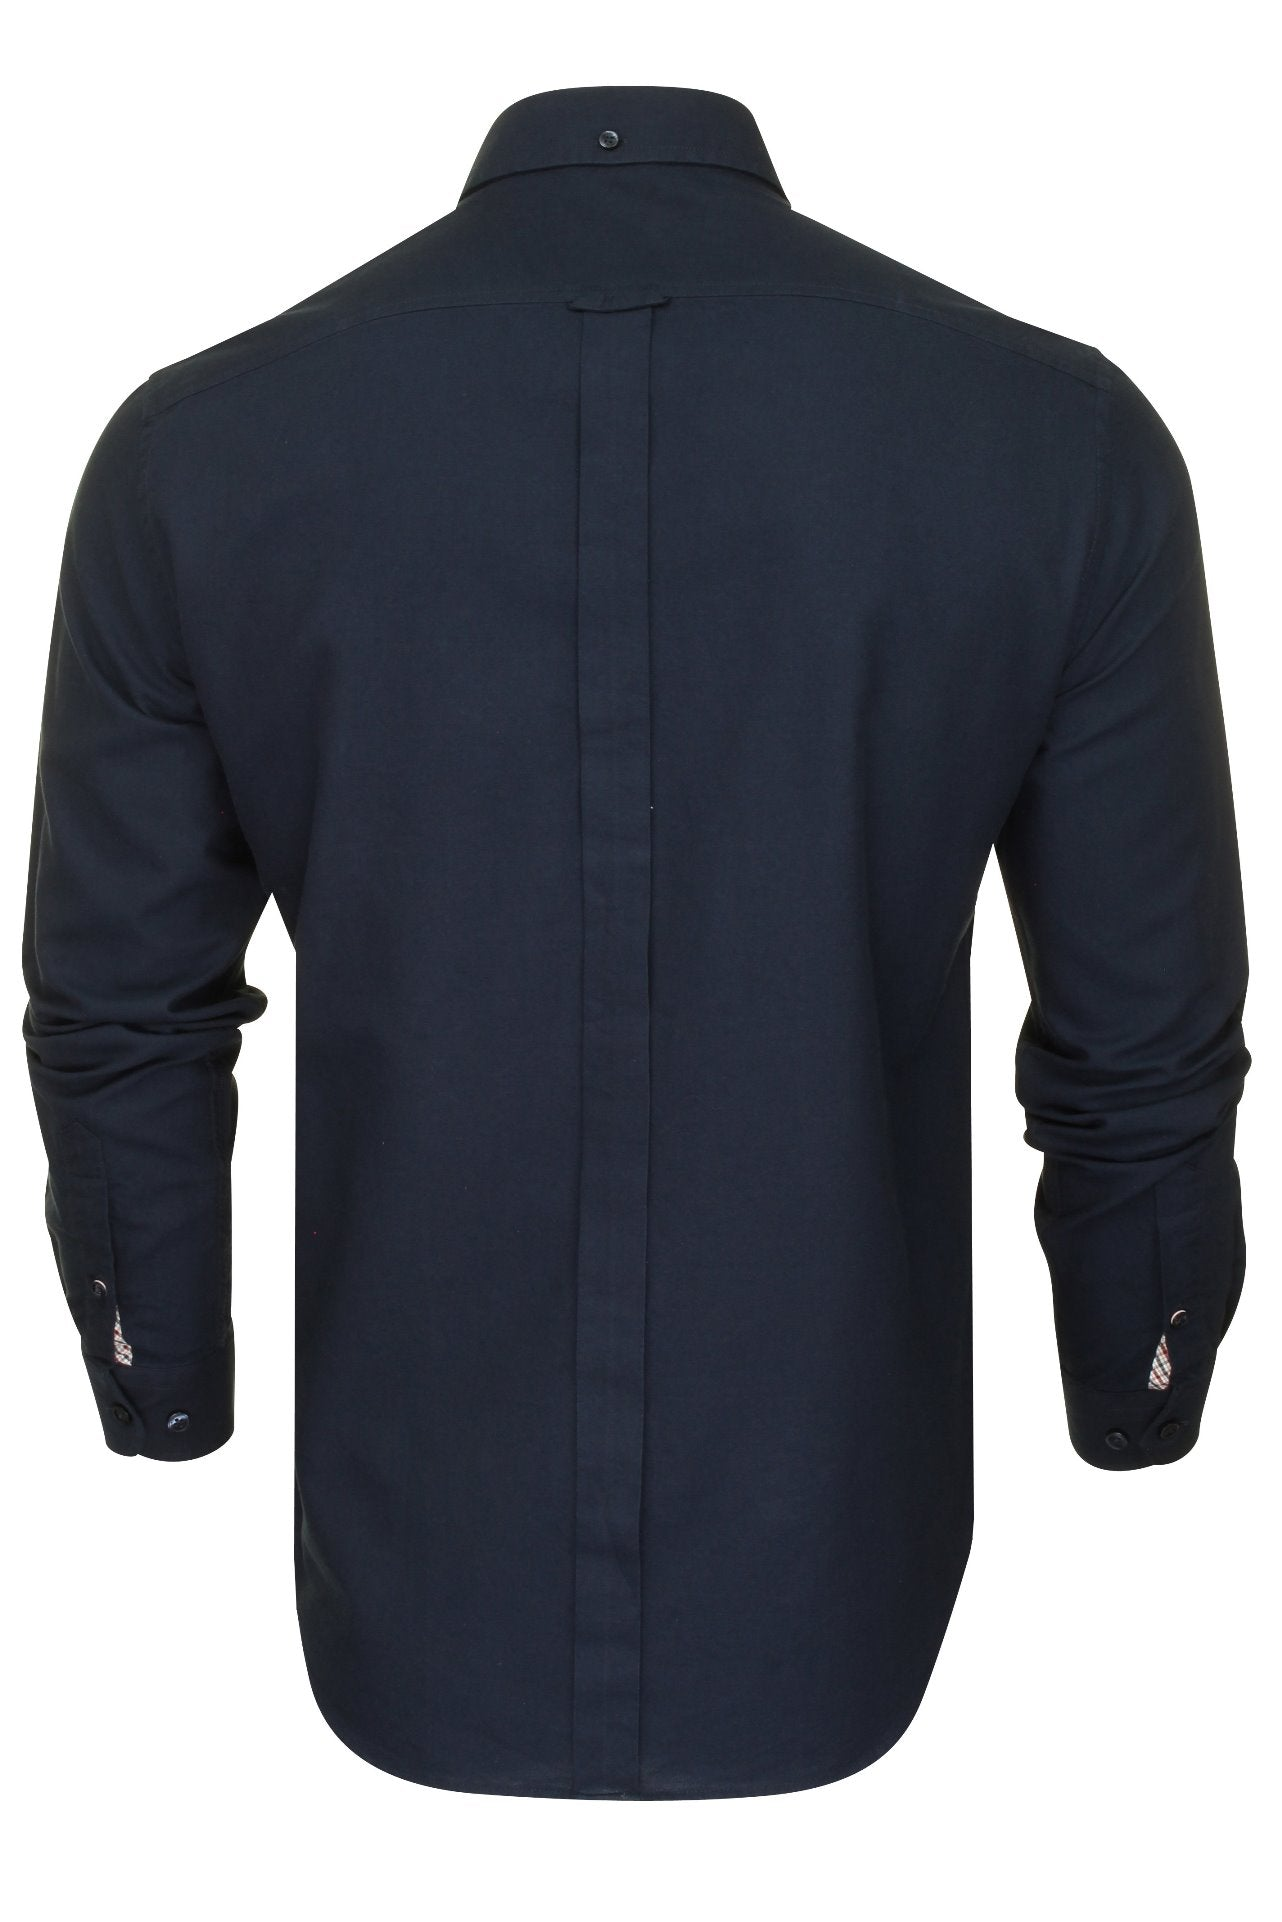 Ben Sherman Mens Oxford Shirt - Long Sleeved-3